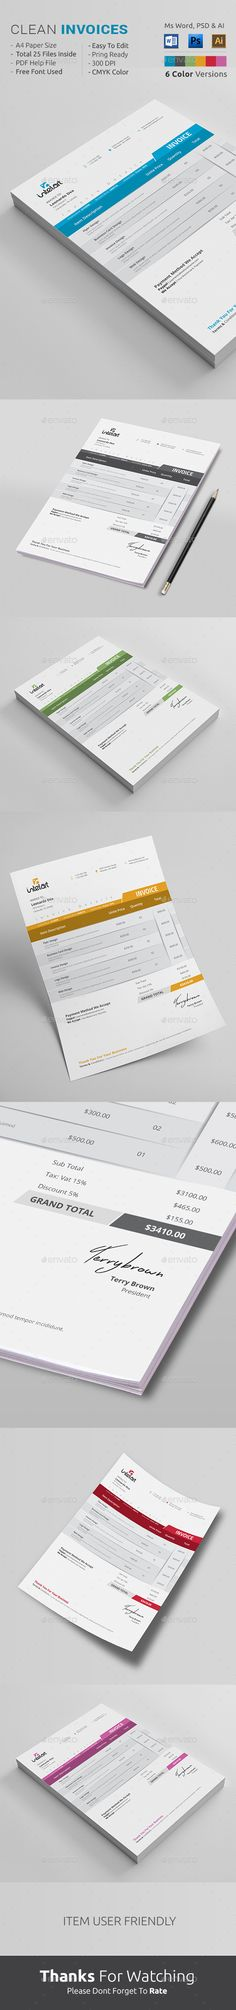 Invoice Photoshop Psd Red Psd Available Here Invoice